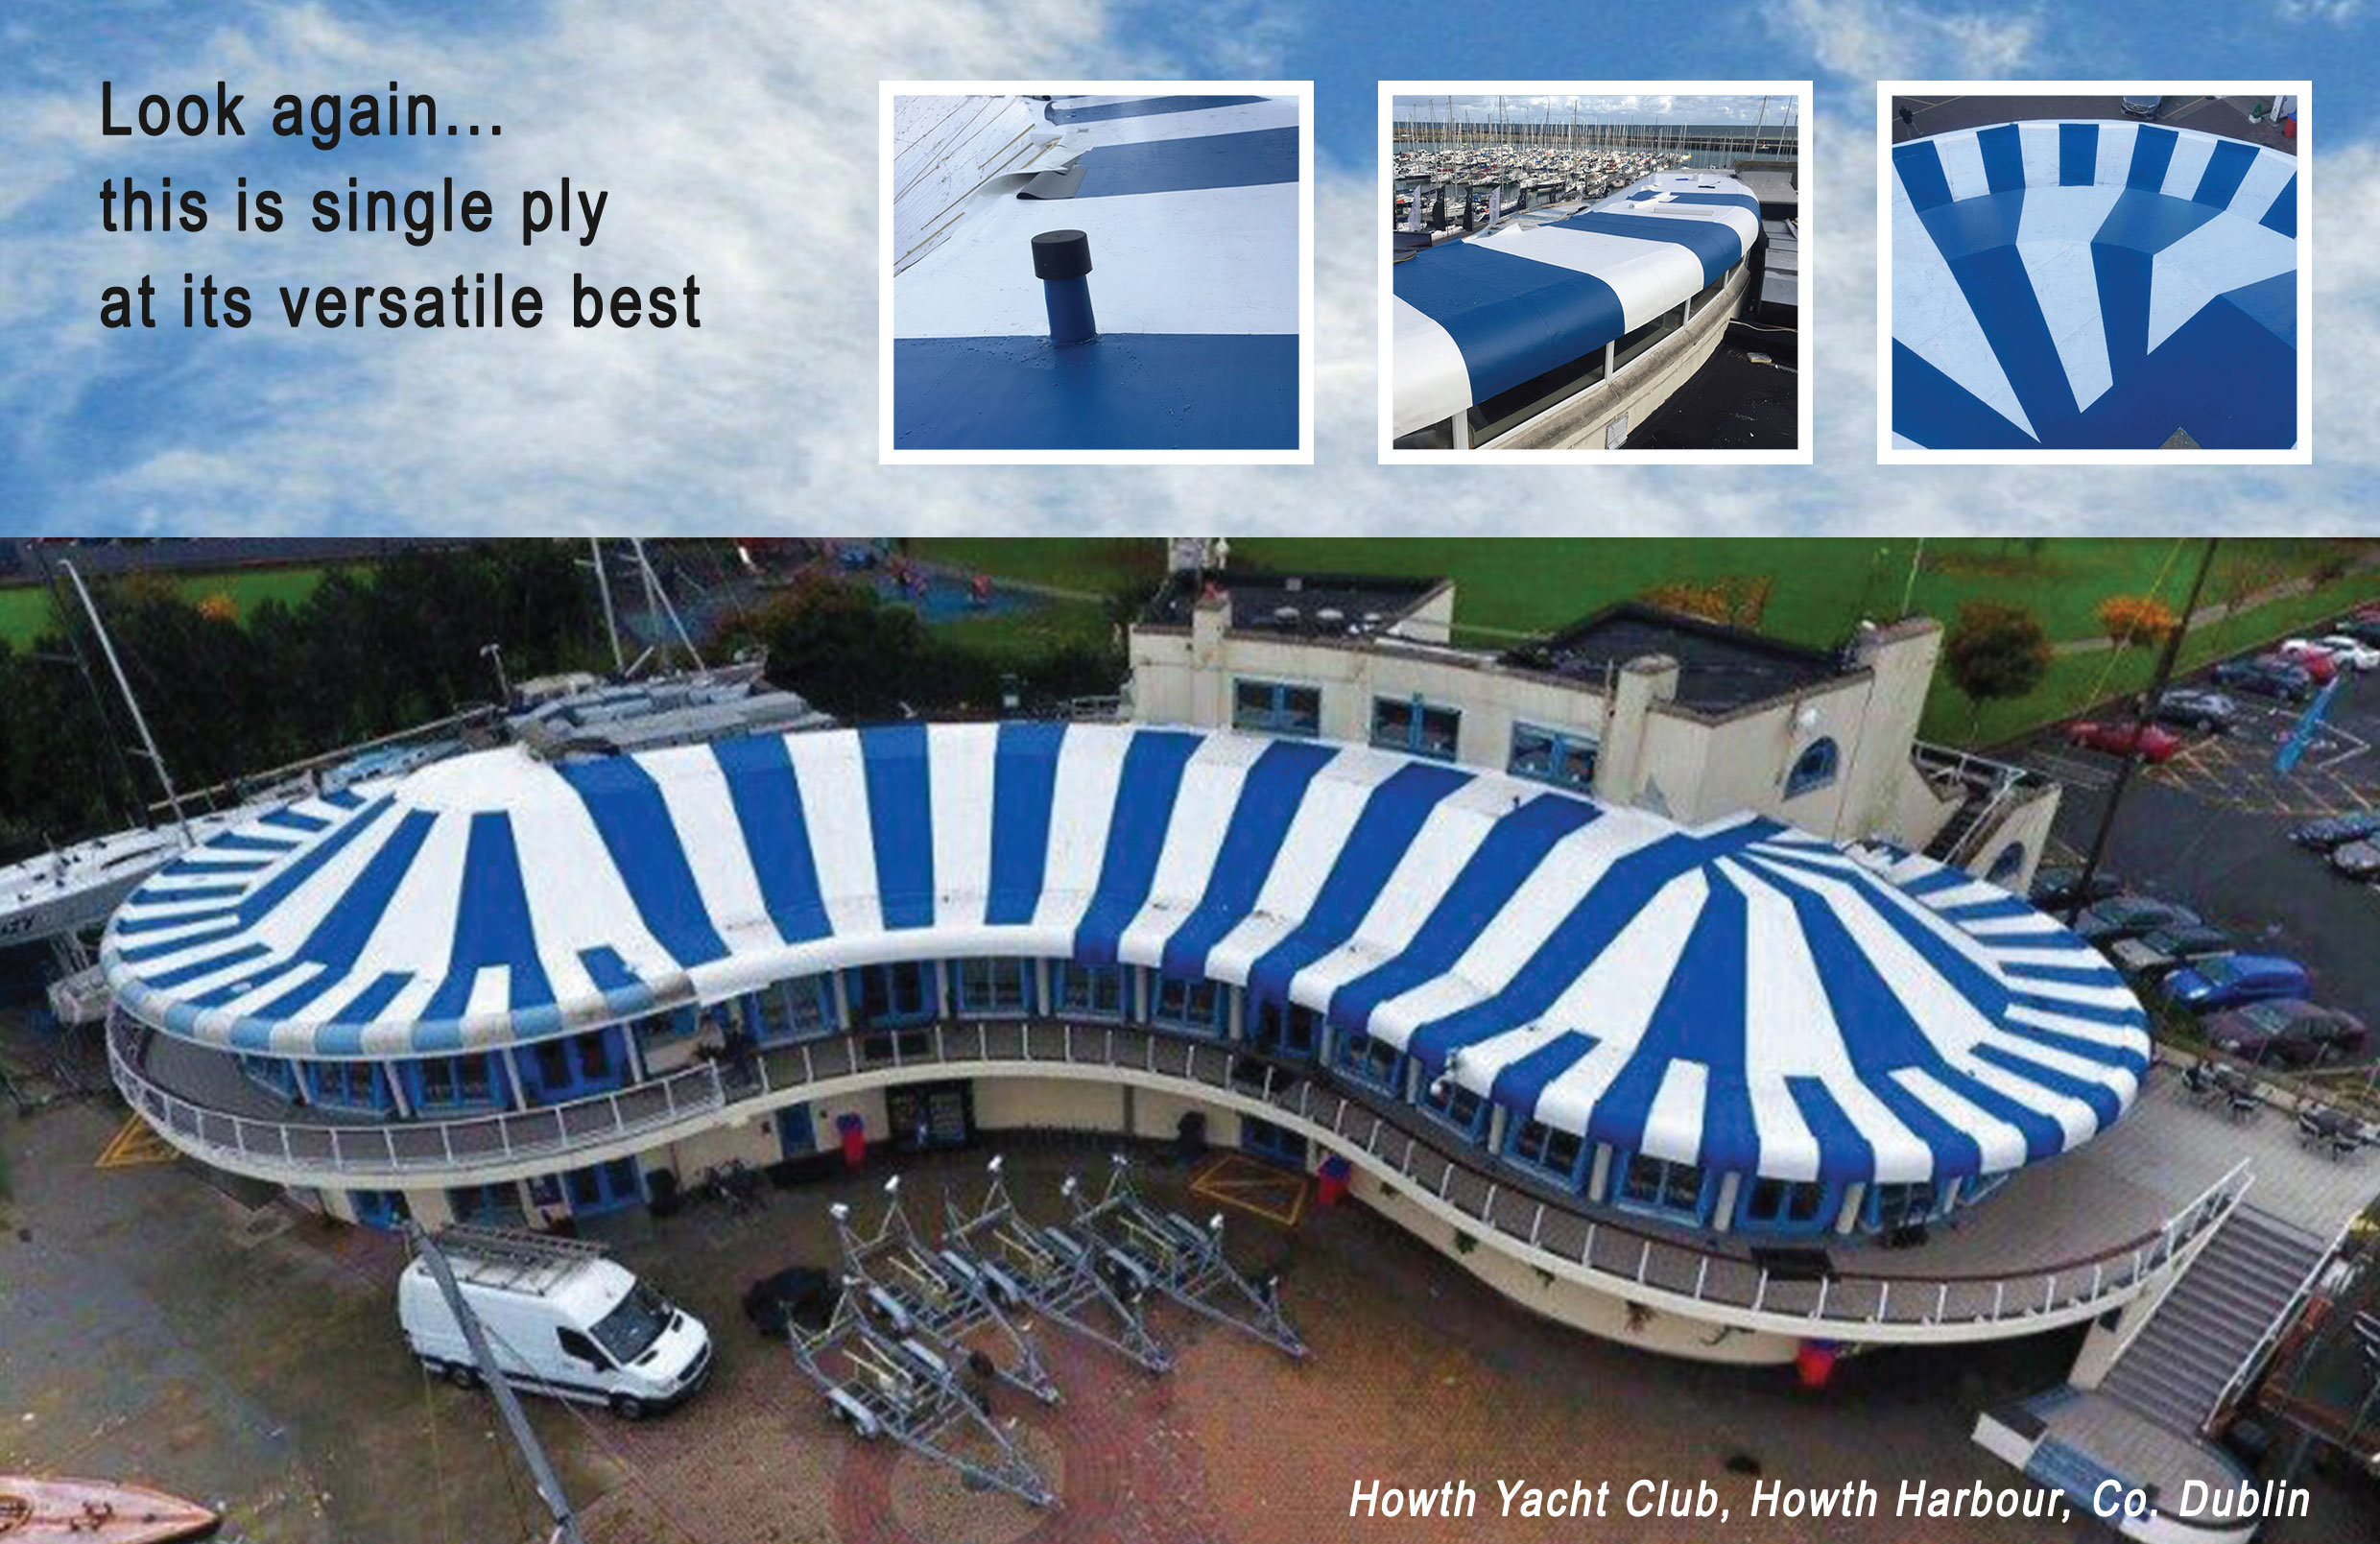 alkor-roof-howth-yacht-club